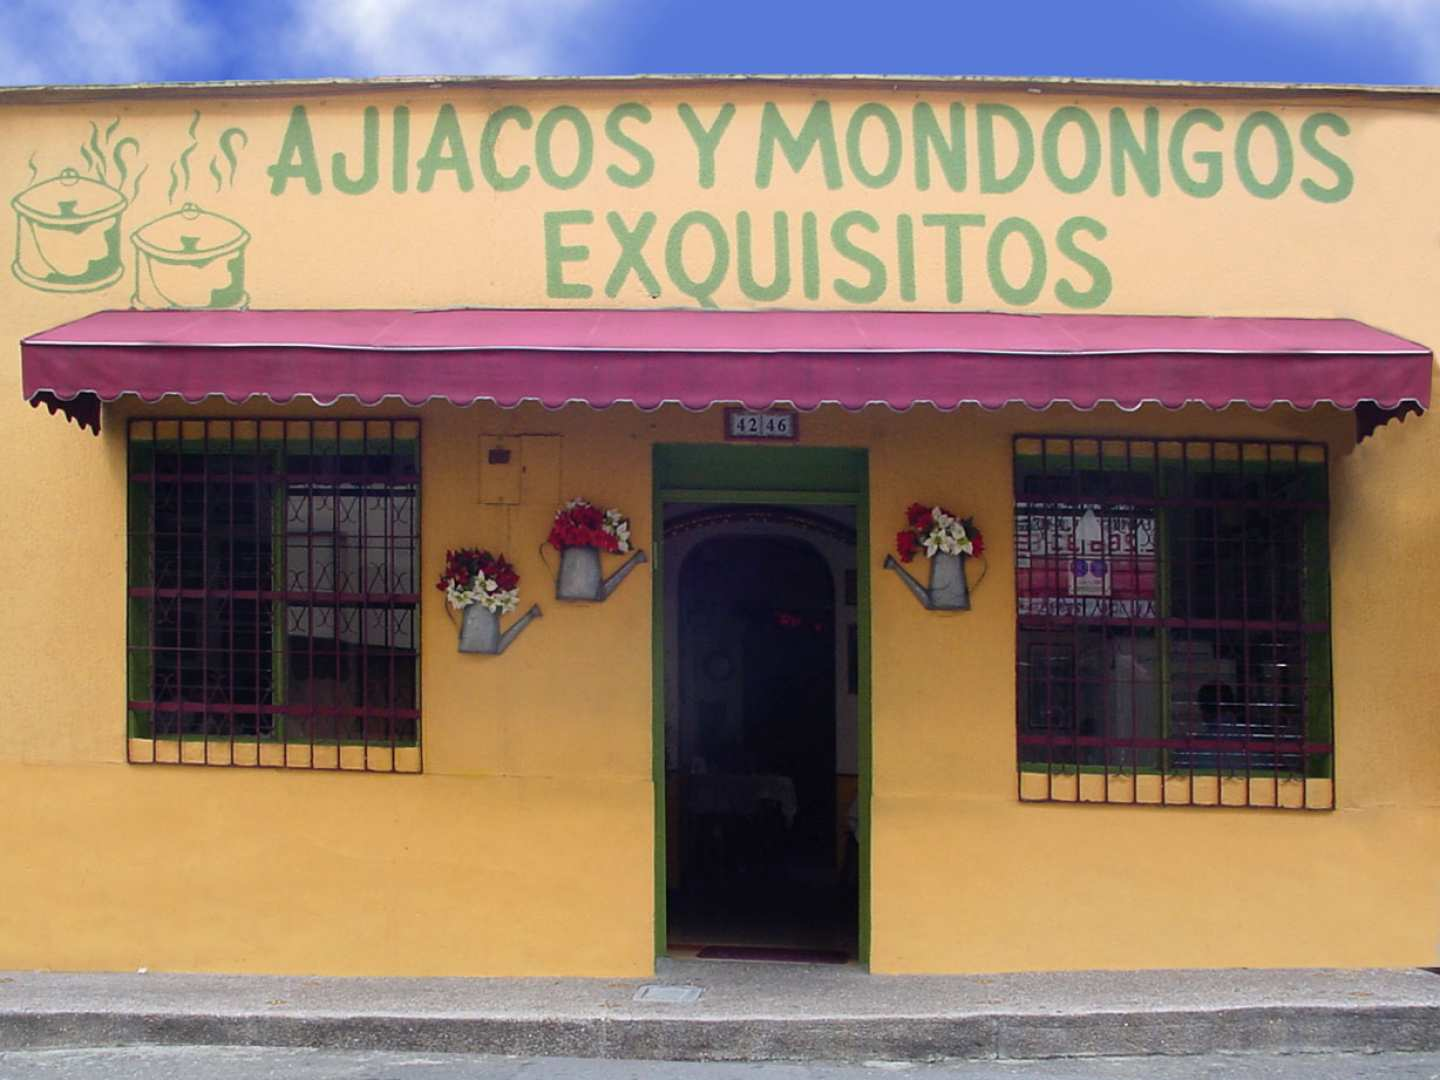 Ajiacos y Mondongos Exquisitos